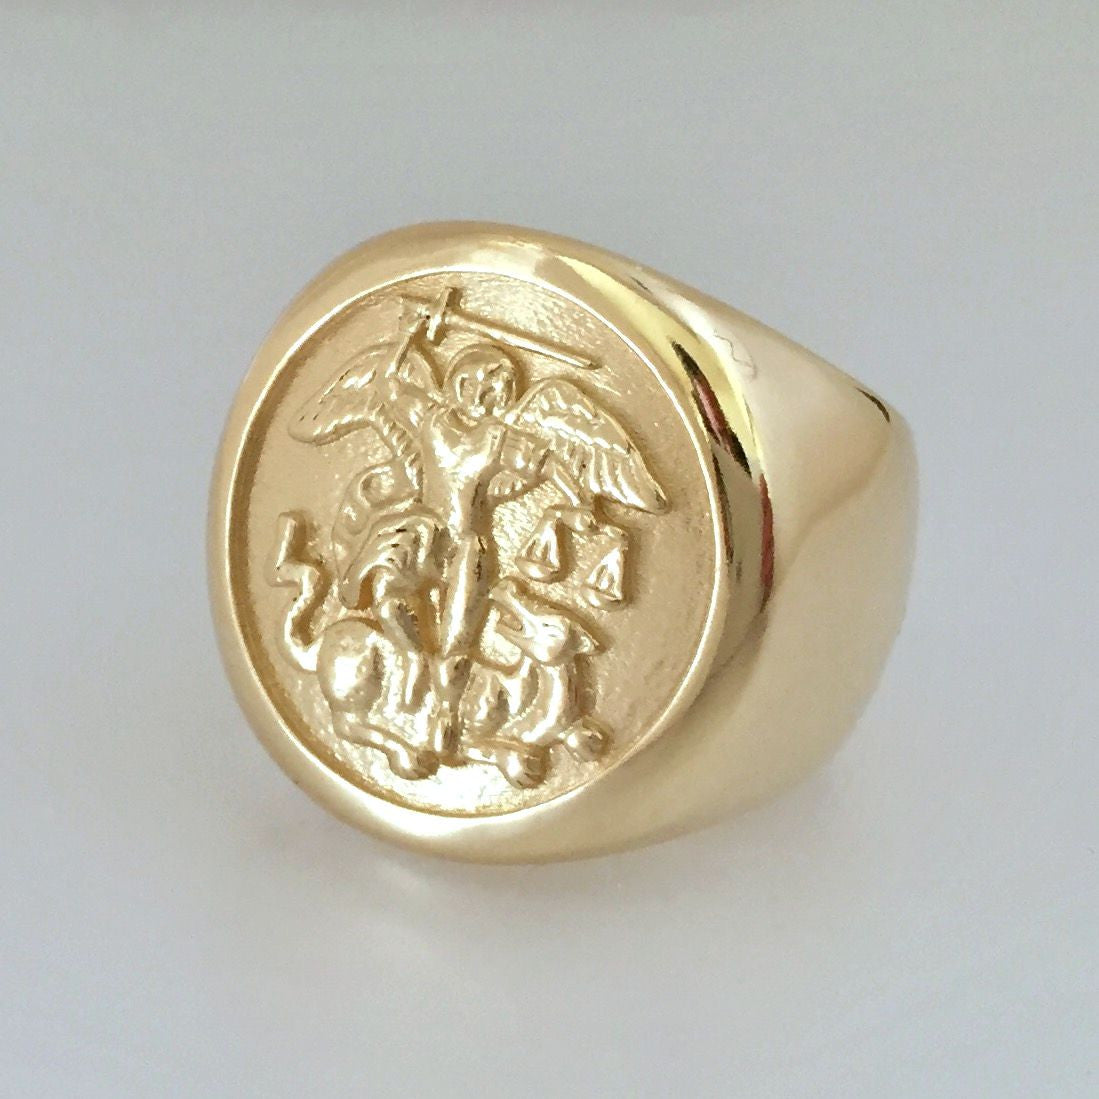 Custom Order - 14k Yellow Gold St. Michael Signet Ring - Final Payment